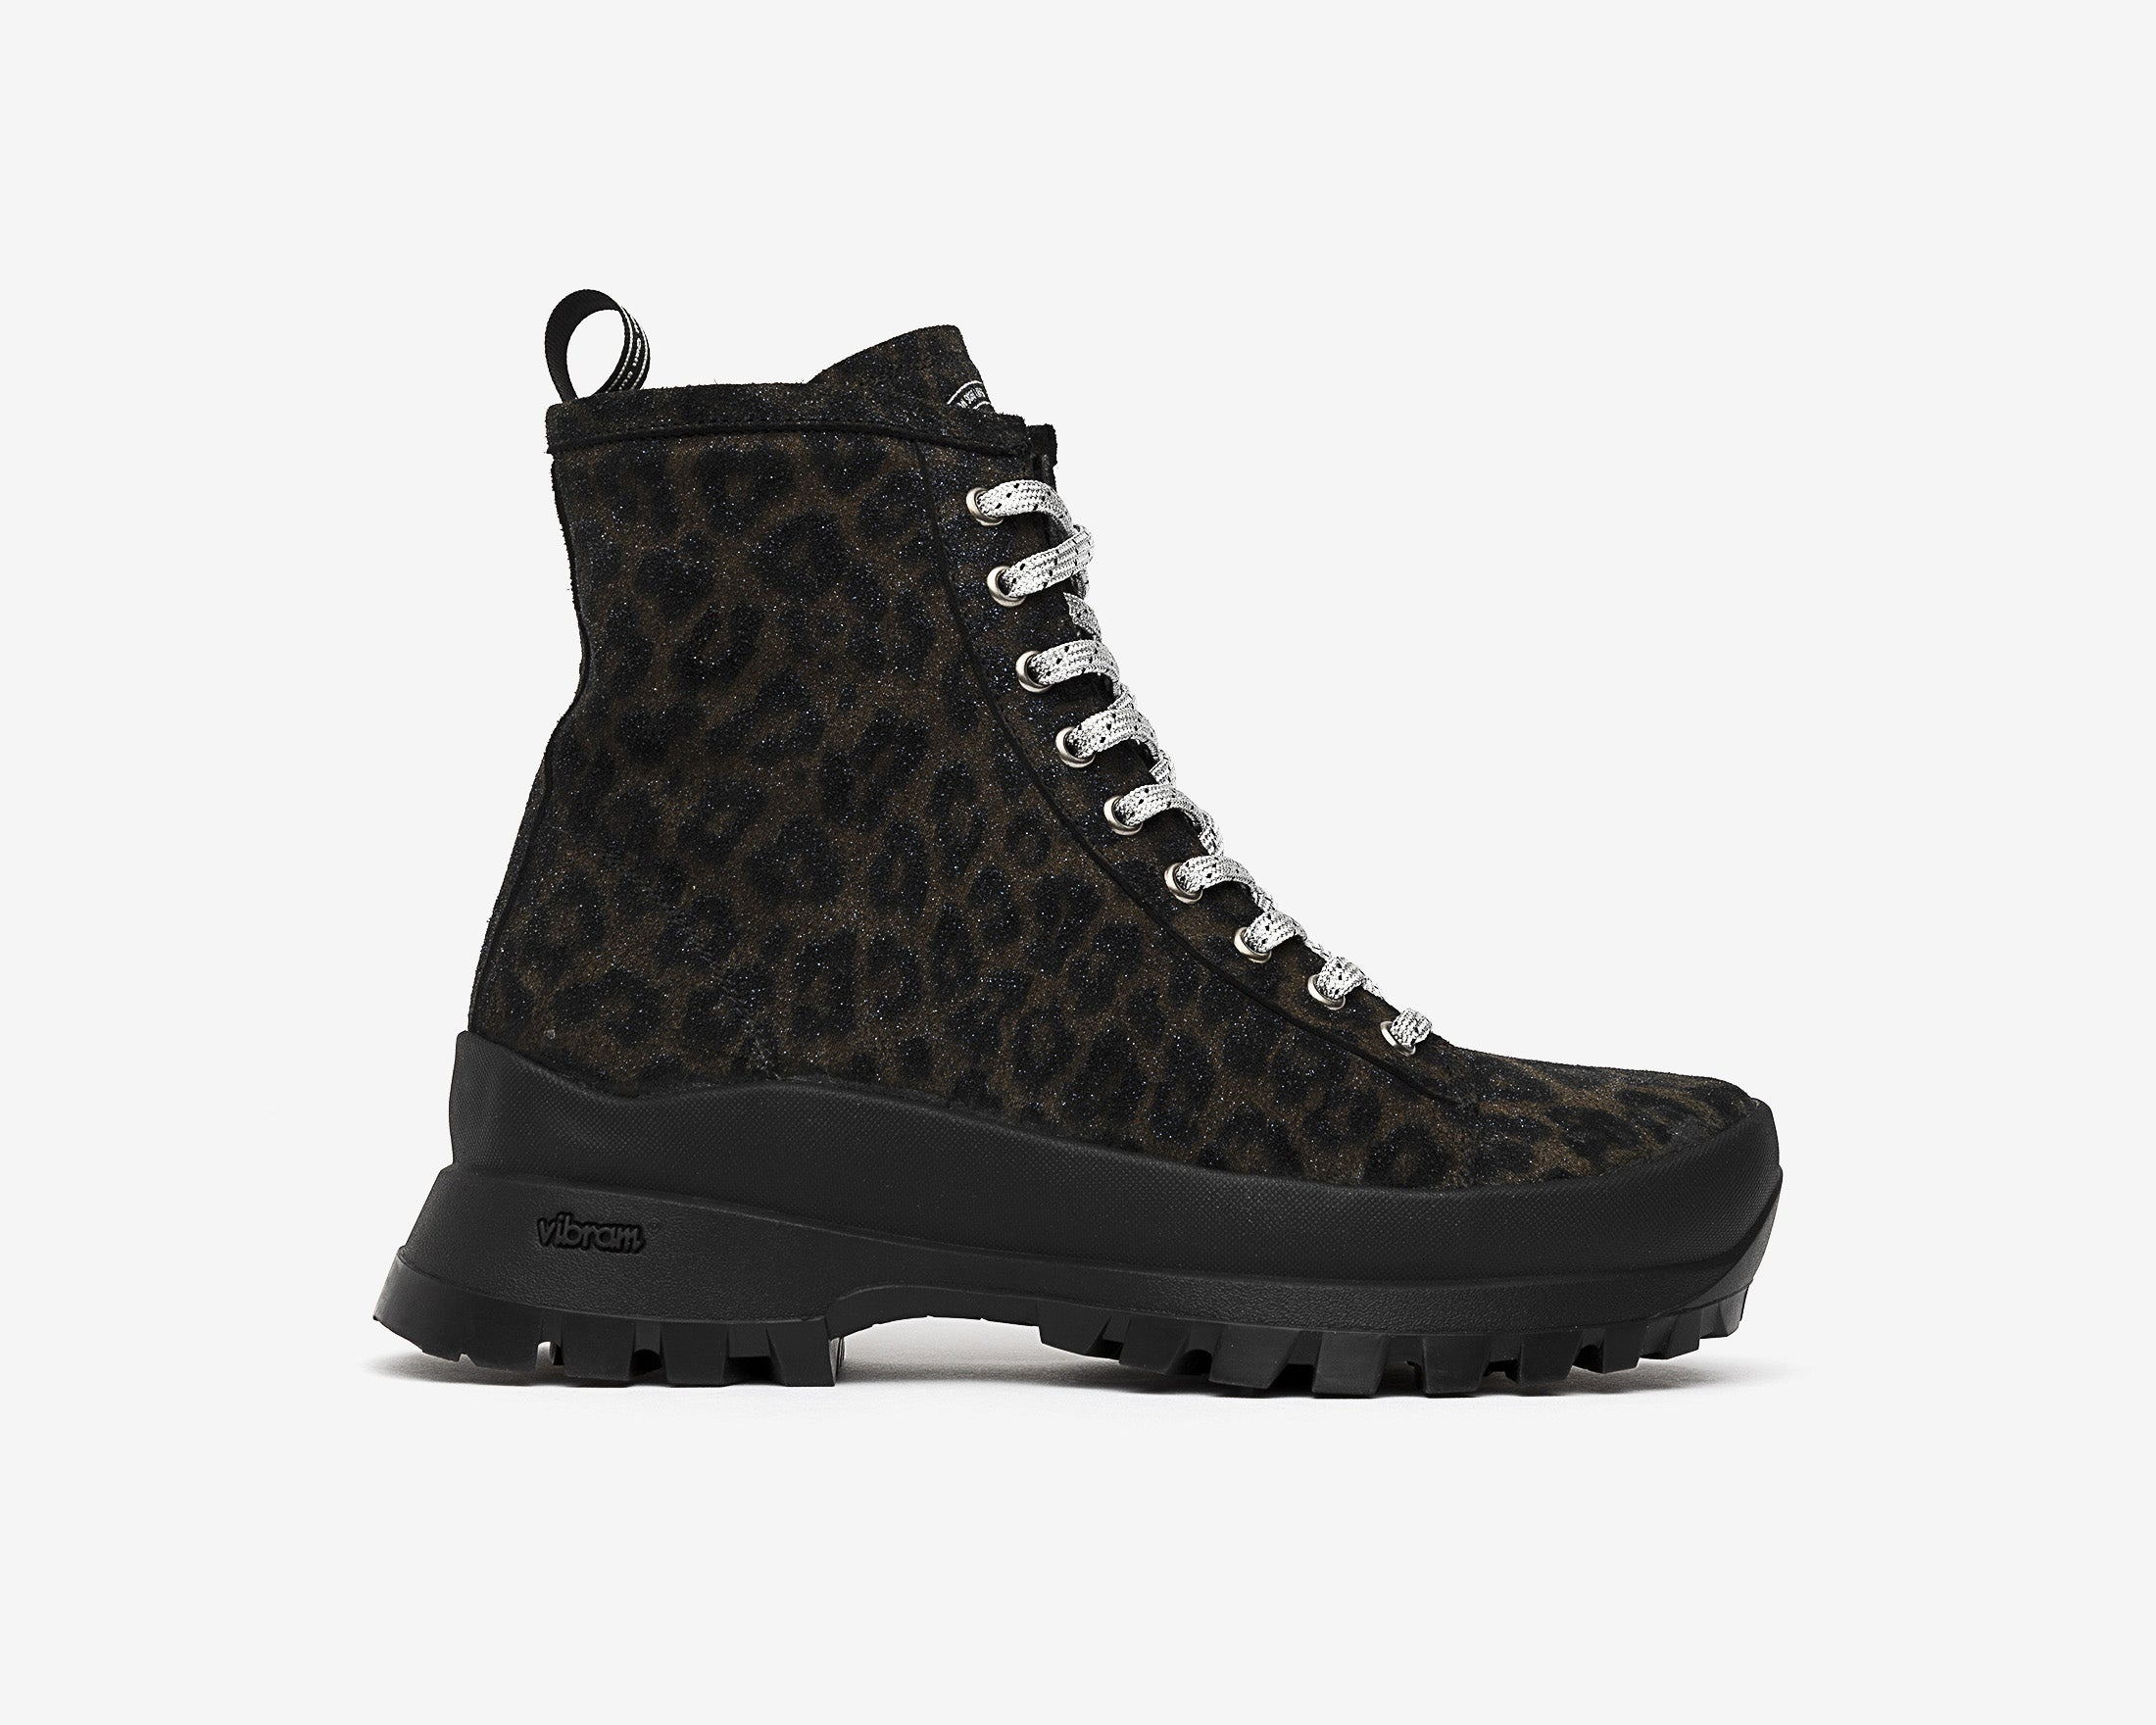 Denise Combat Boot with Vibram bottom in Black Leopard - Profile